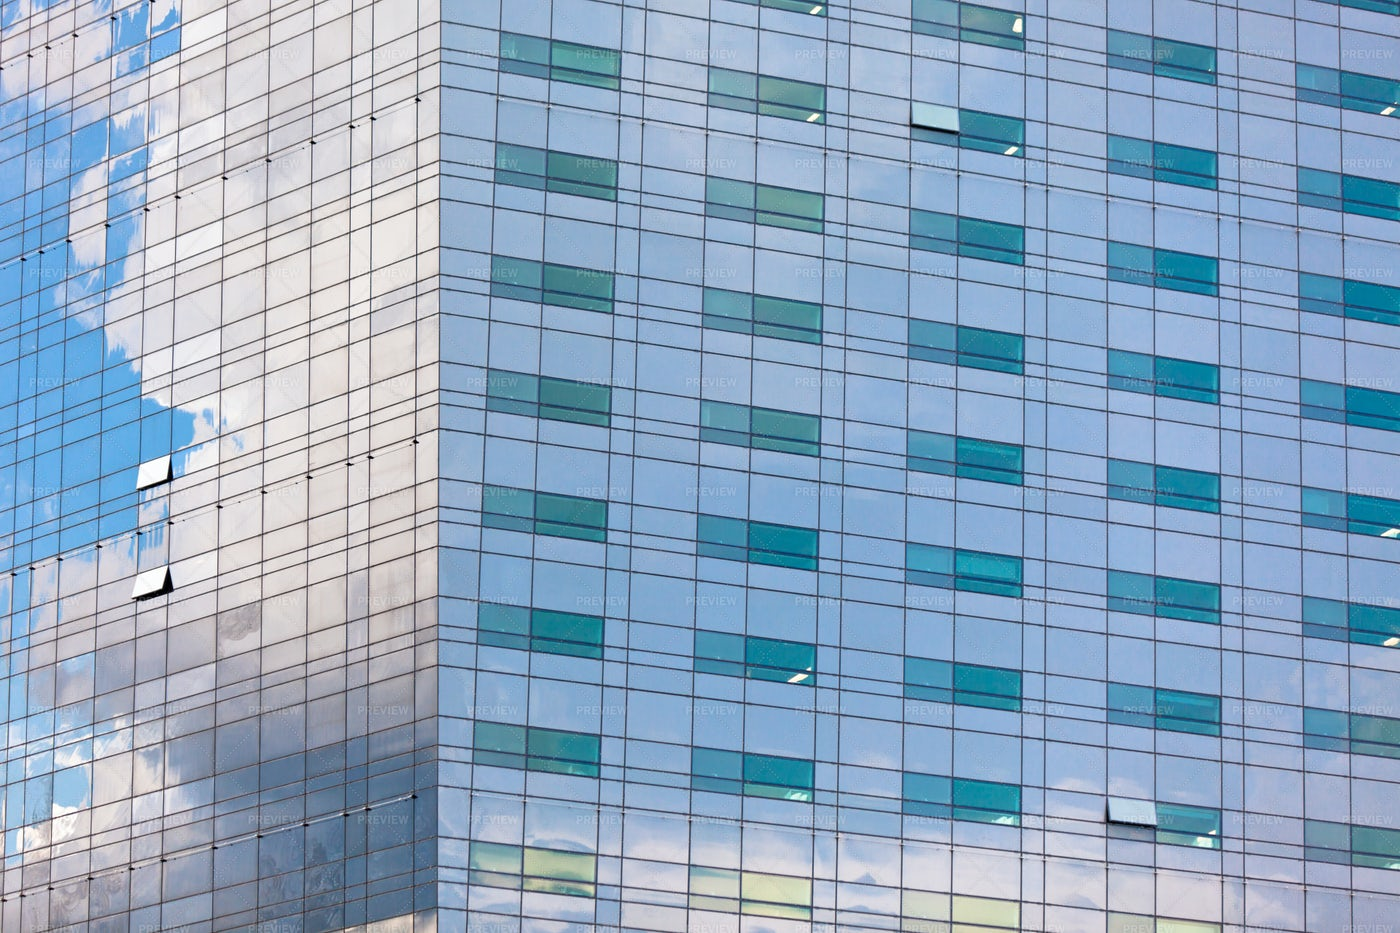 Reflections In Glass Building: Stock Photos